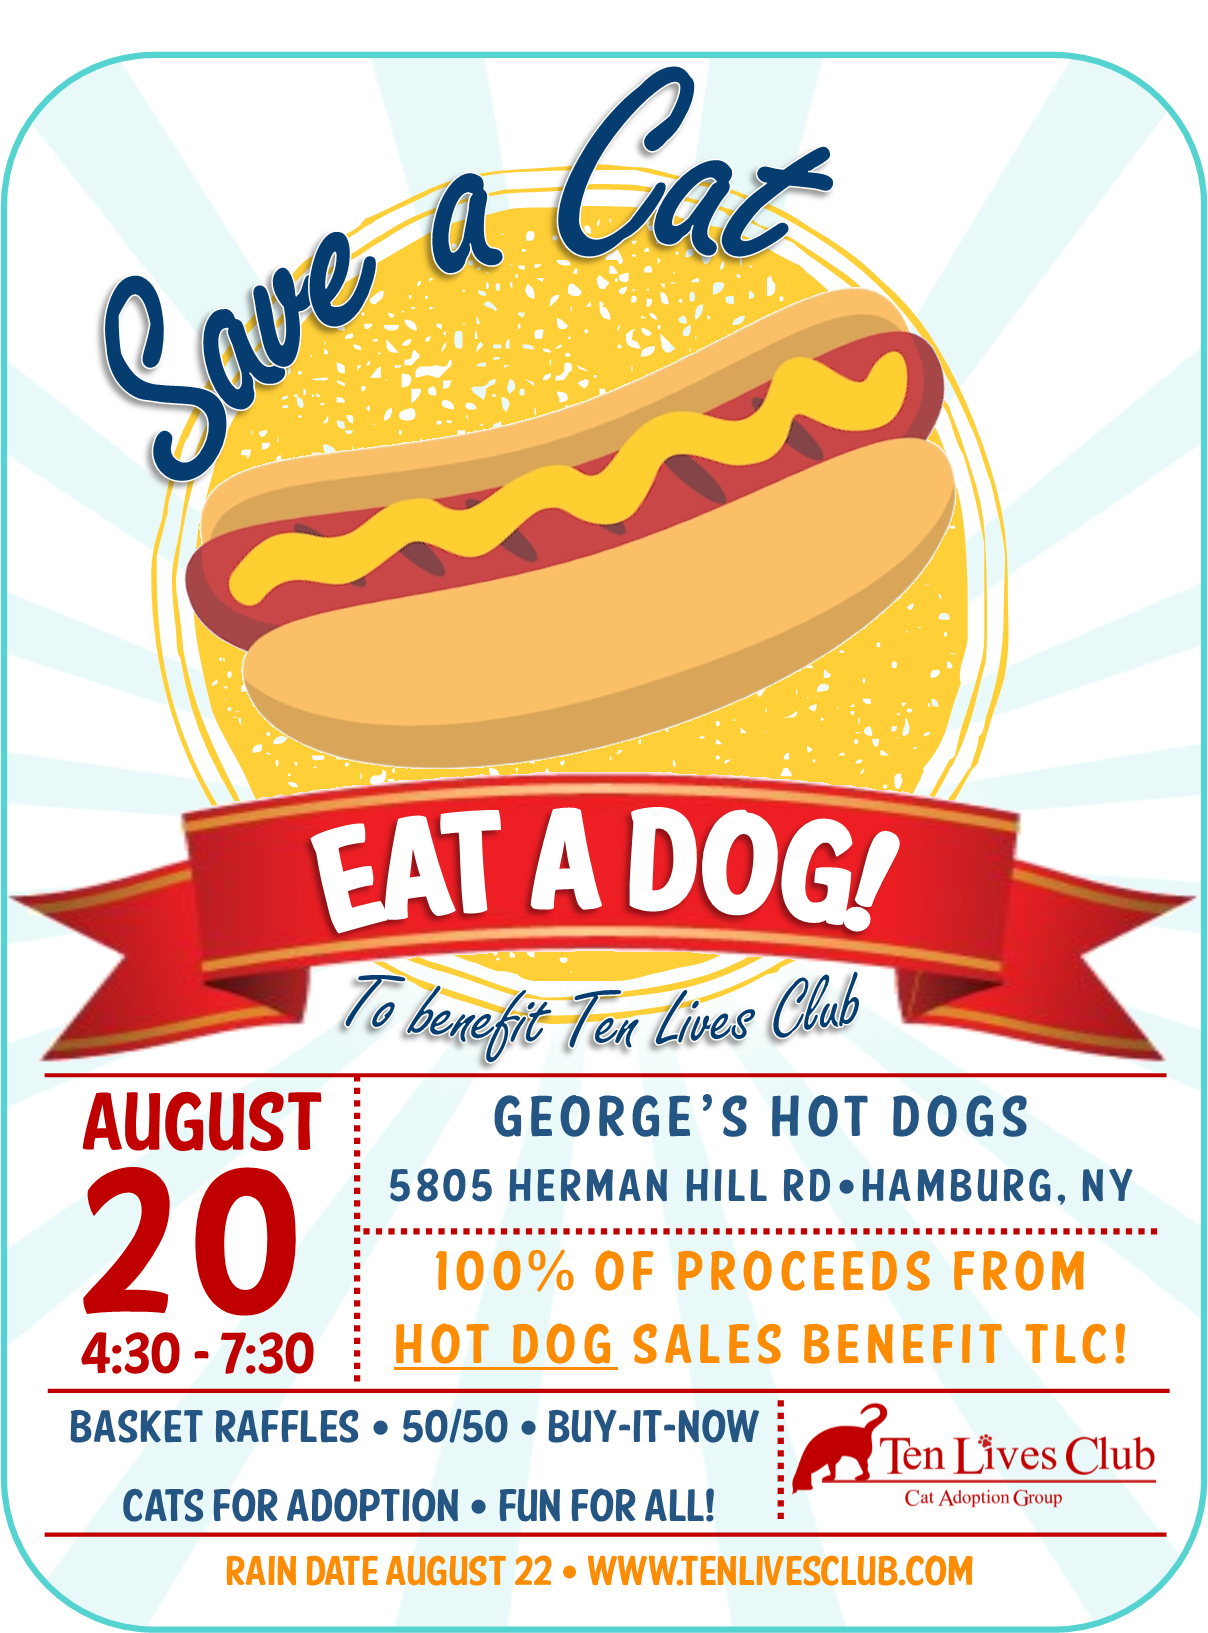 Save a Cat Eat a Dog Flyer.png